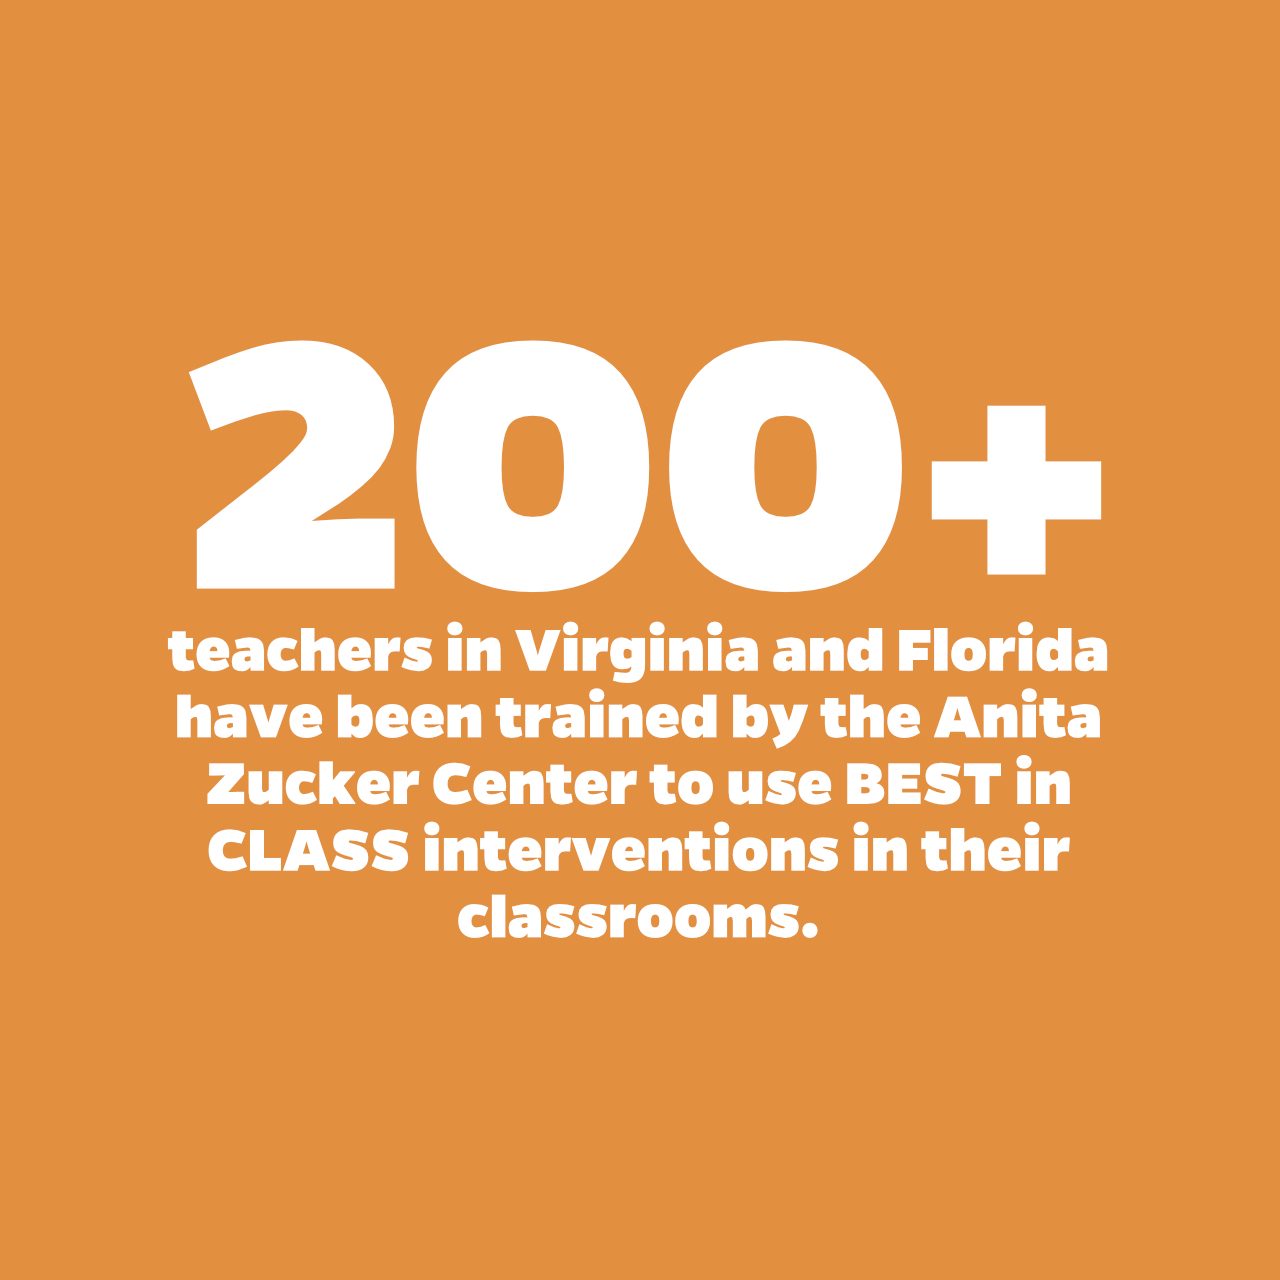 Over 200 teacher in Virginia and Florida have been trained by the Anita Zucker Center to use BEST in CLASS interventions in their classrooms